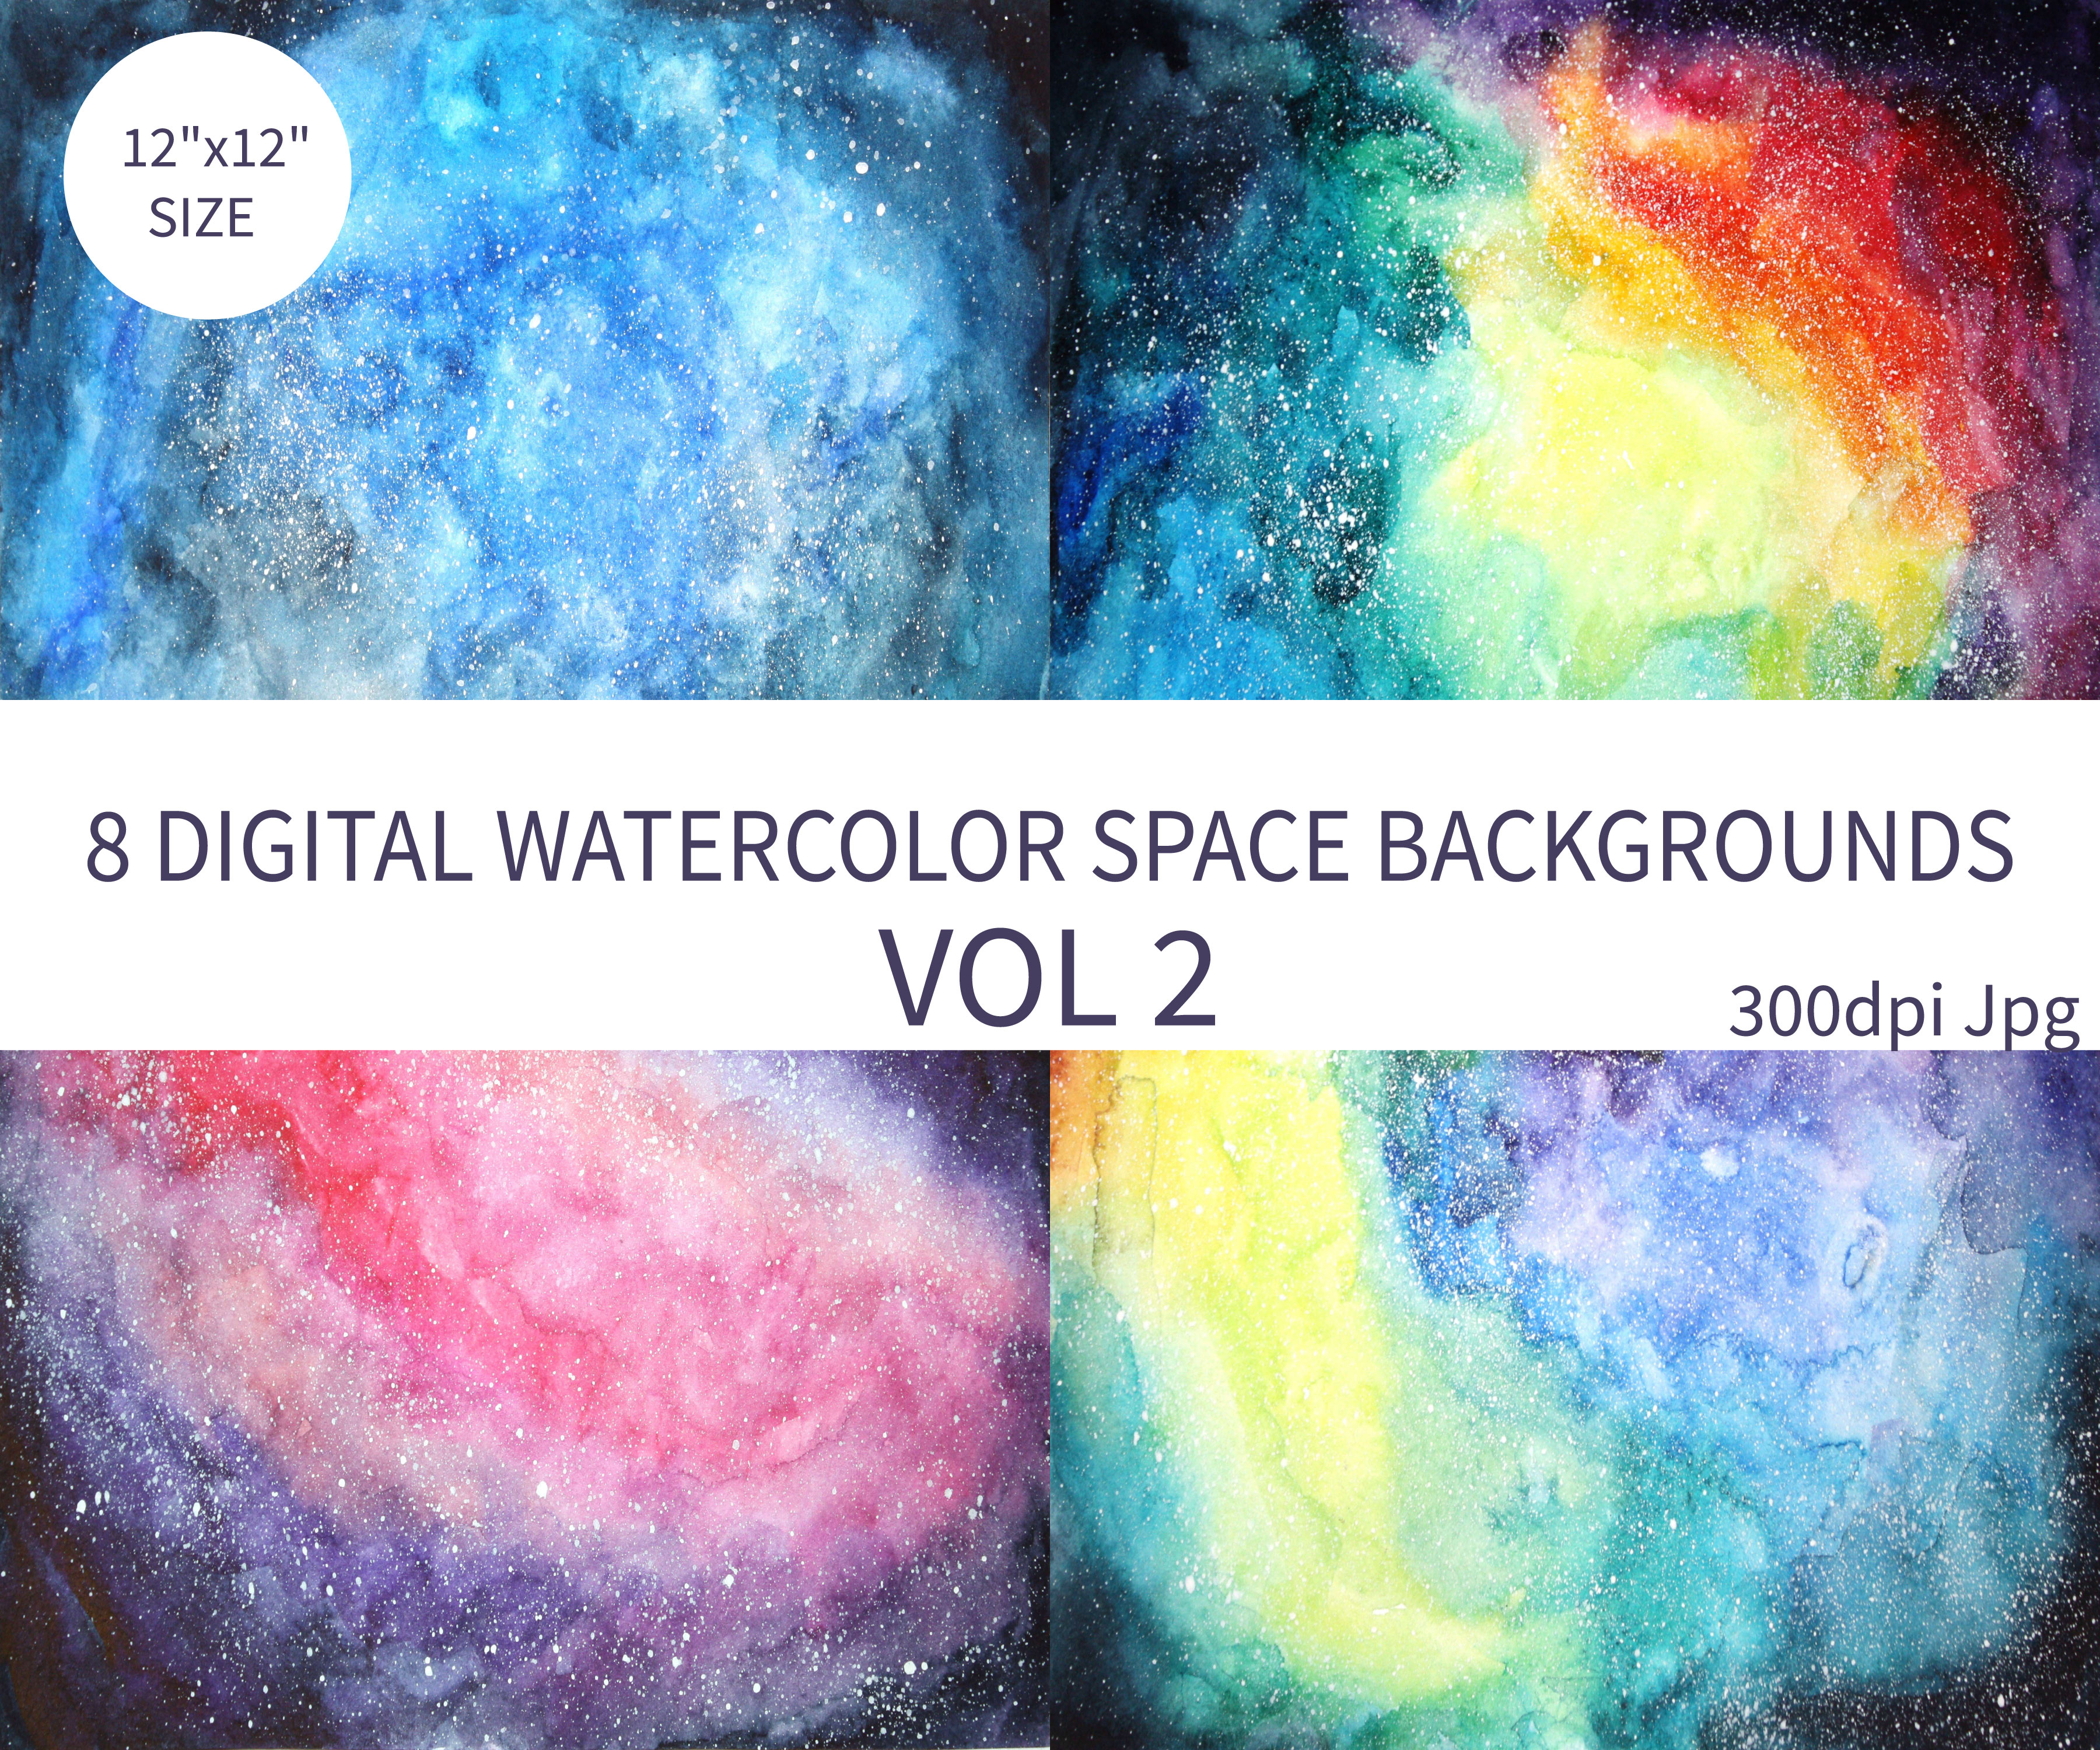 Watercolor Space Background example image 2